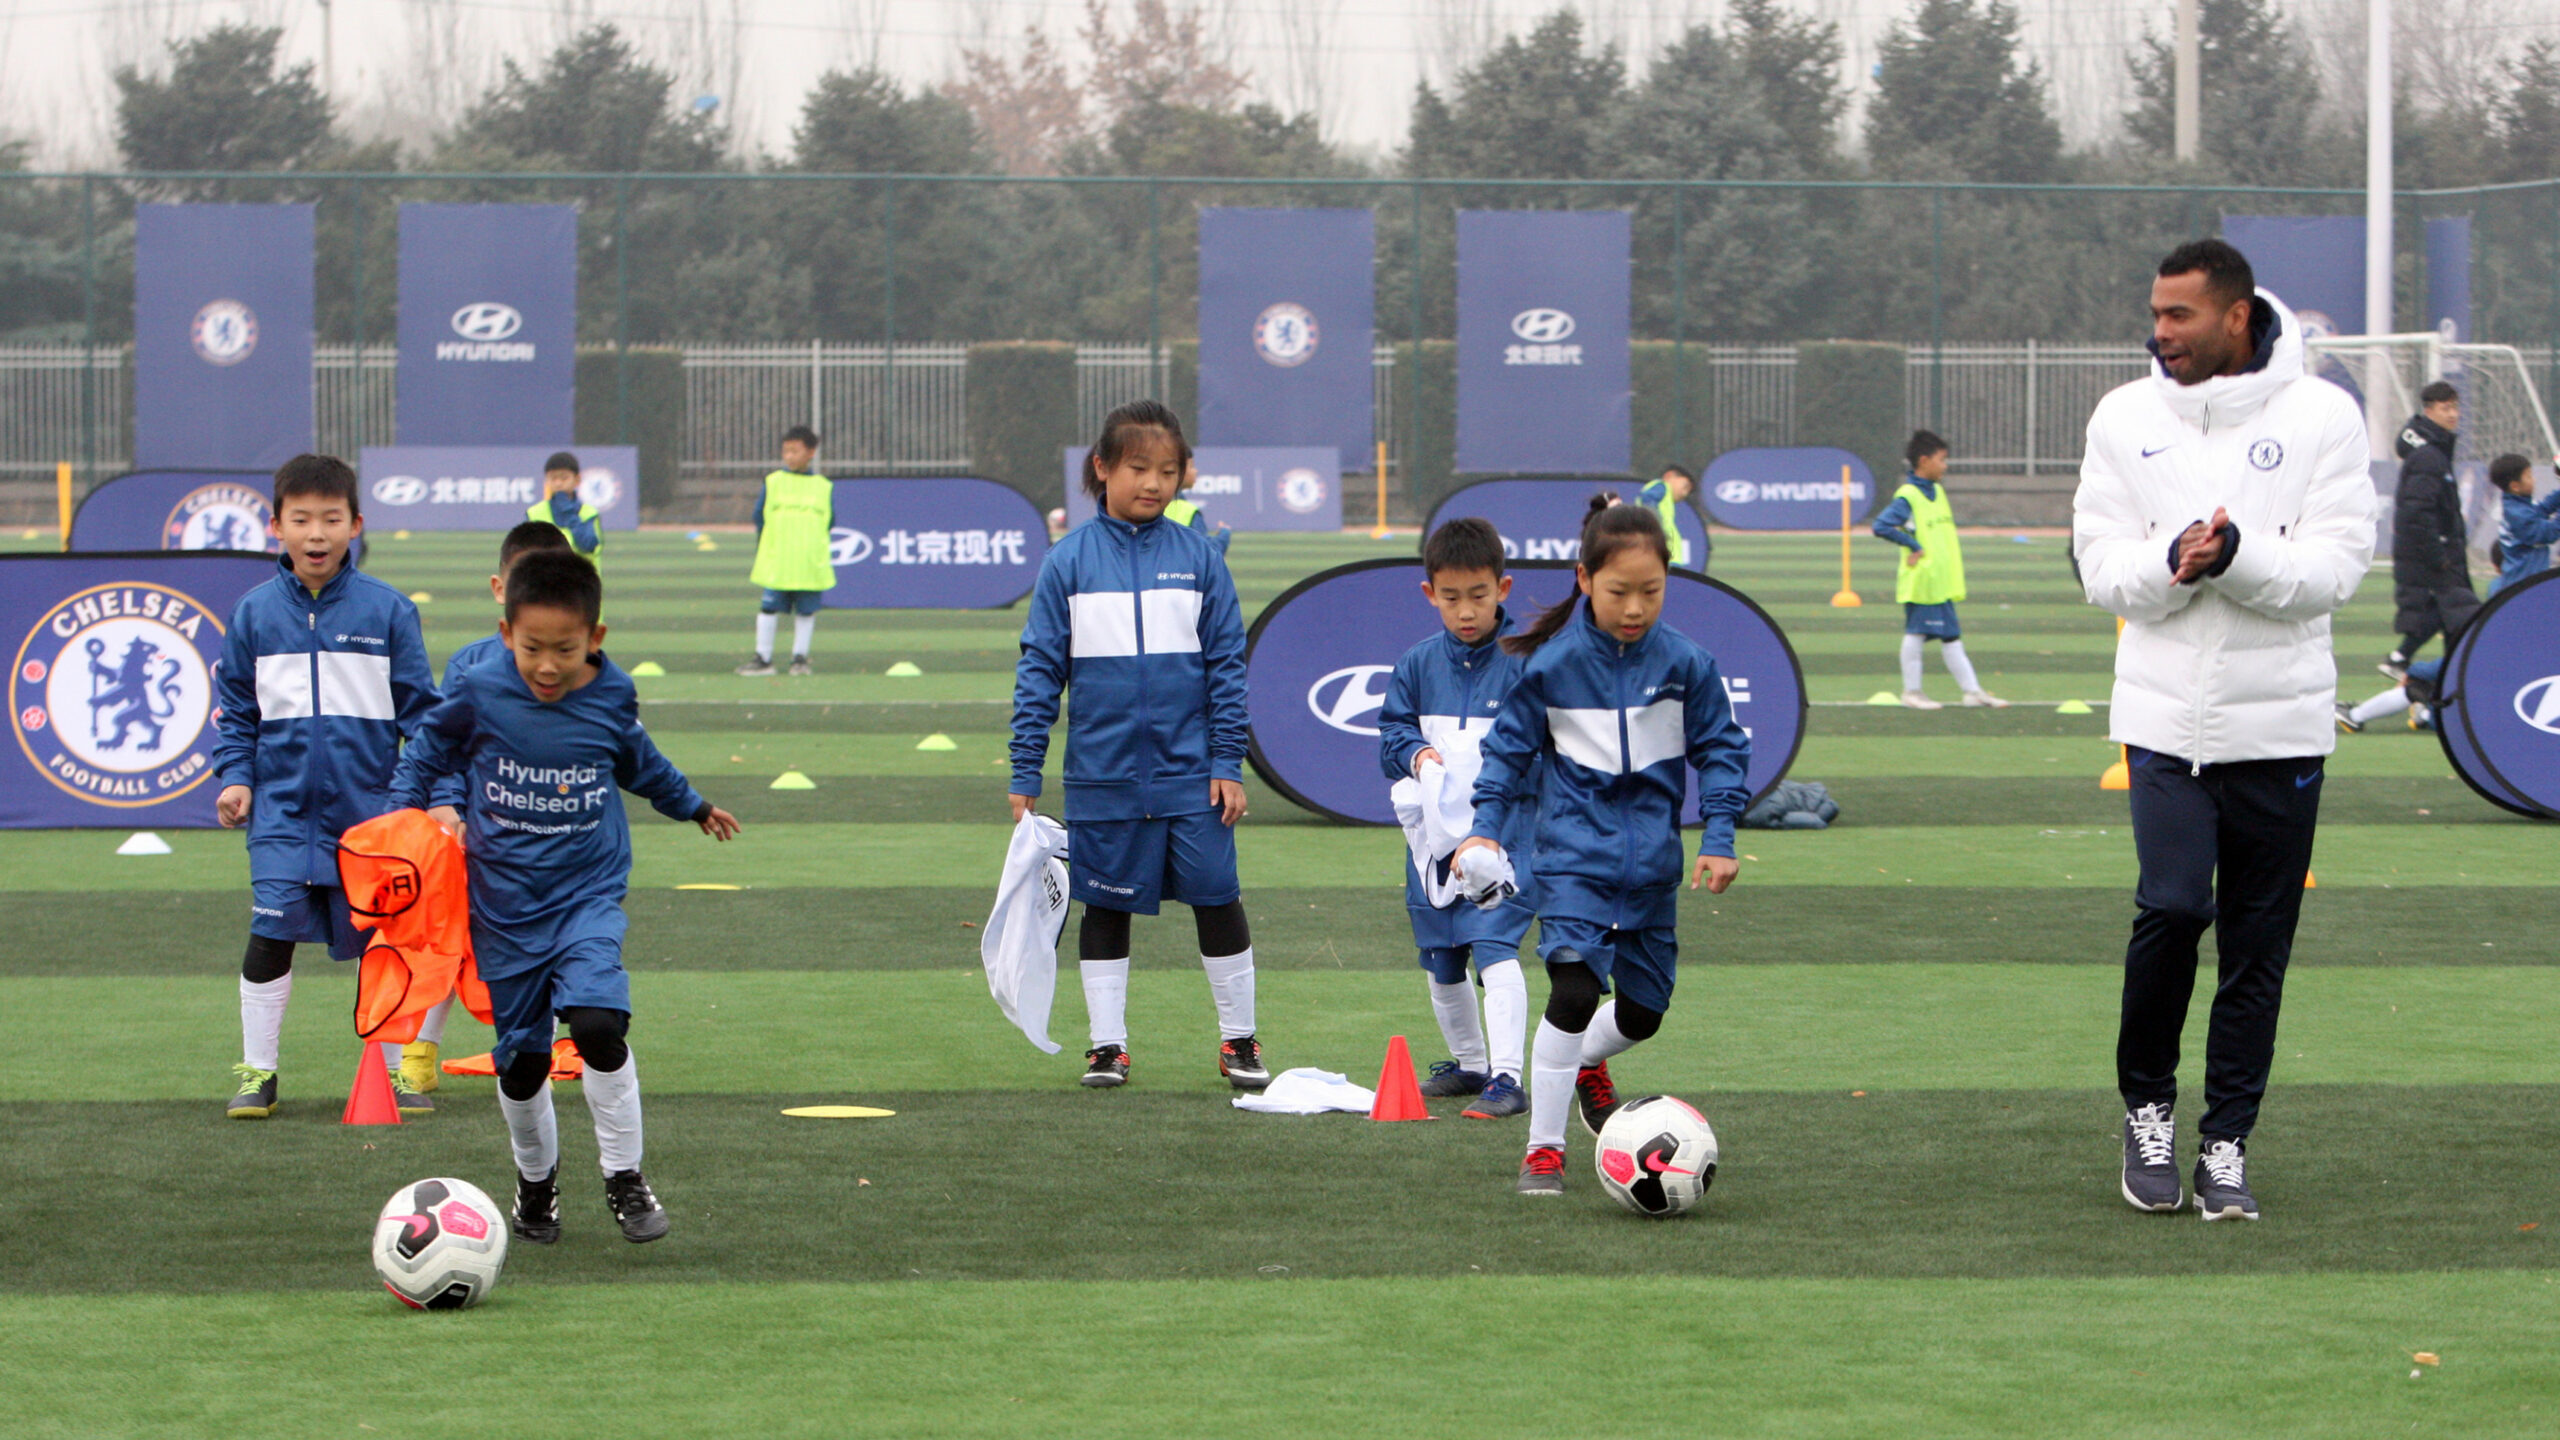 Hyundai Motor Conducts Youth Football Camp in Beijing with Chelsea ..